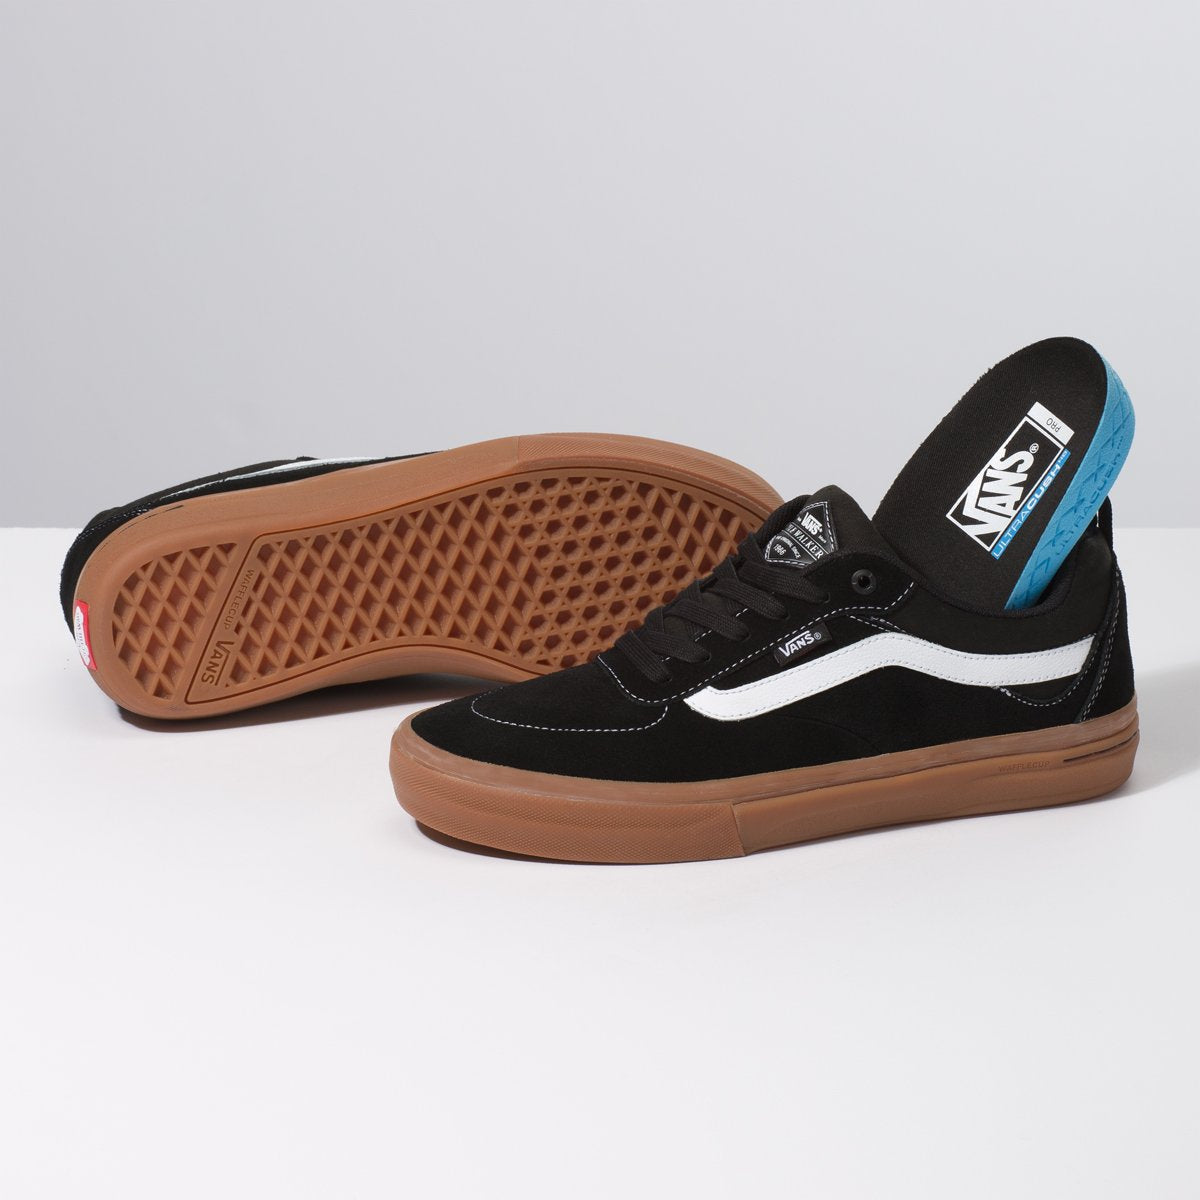 Zapatillas Vans Kyle Walker Pro - Black/Gum - Vans